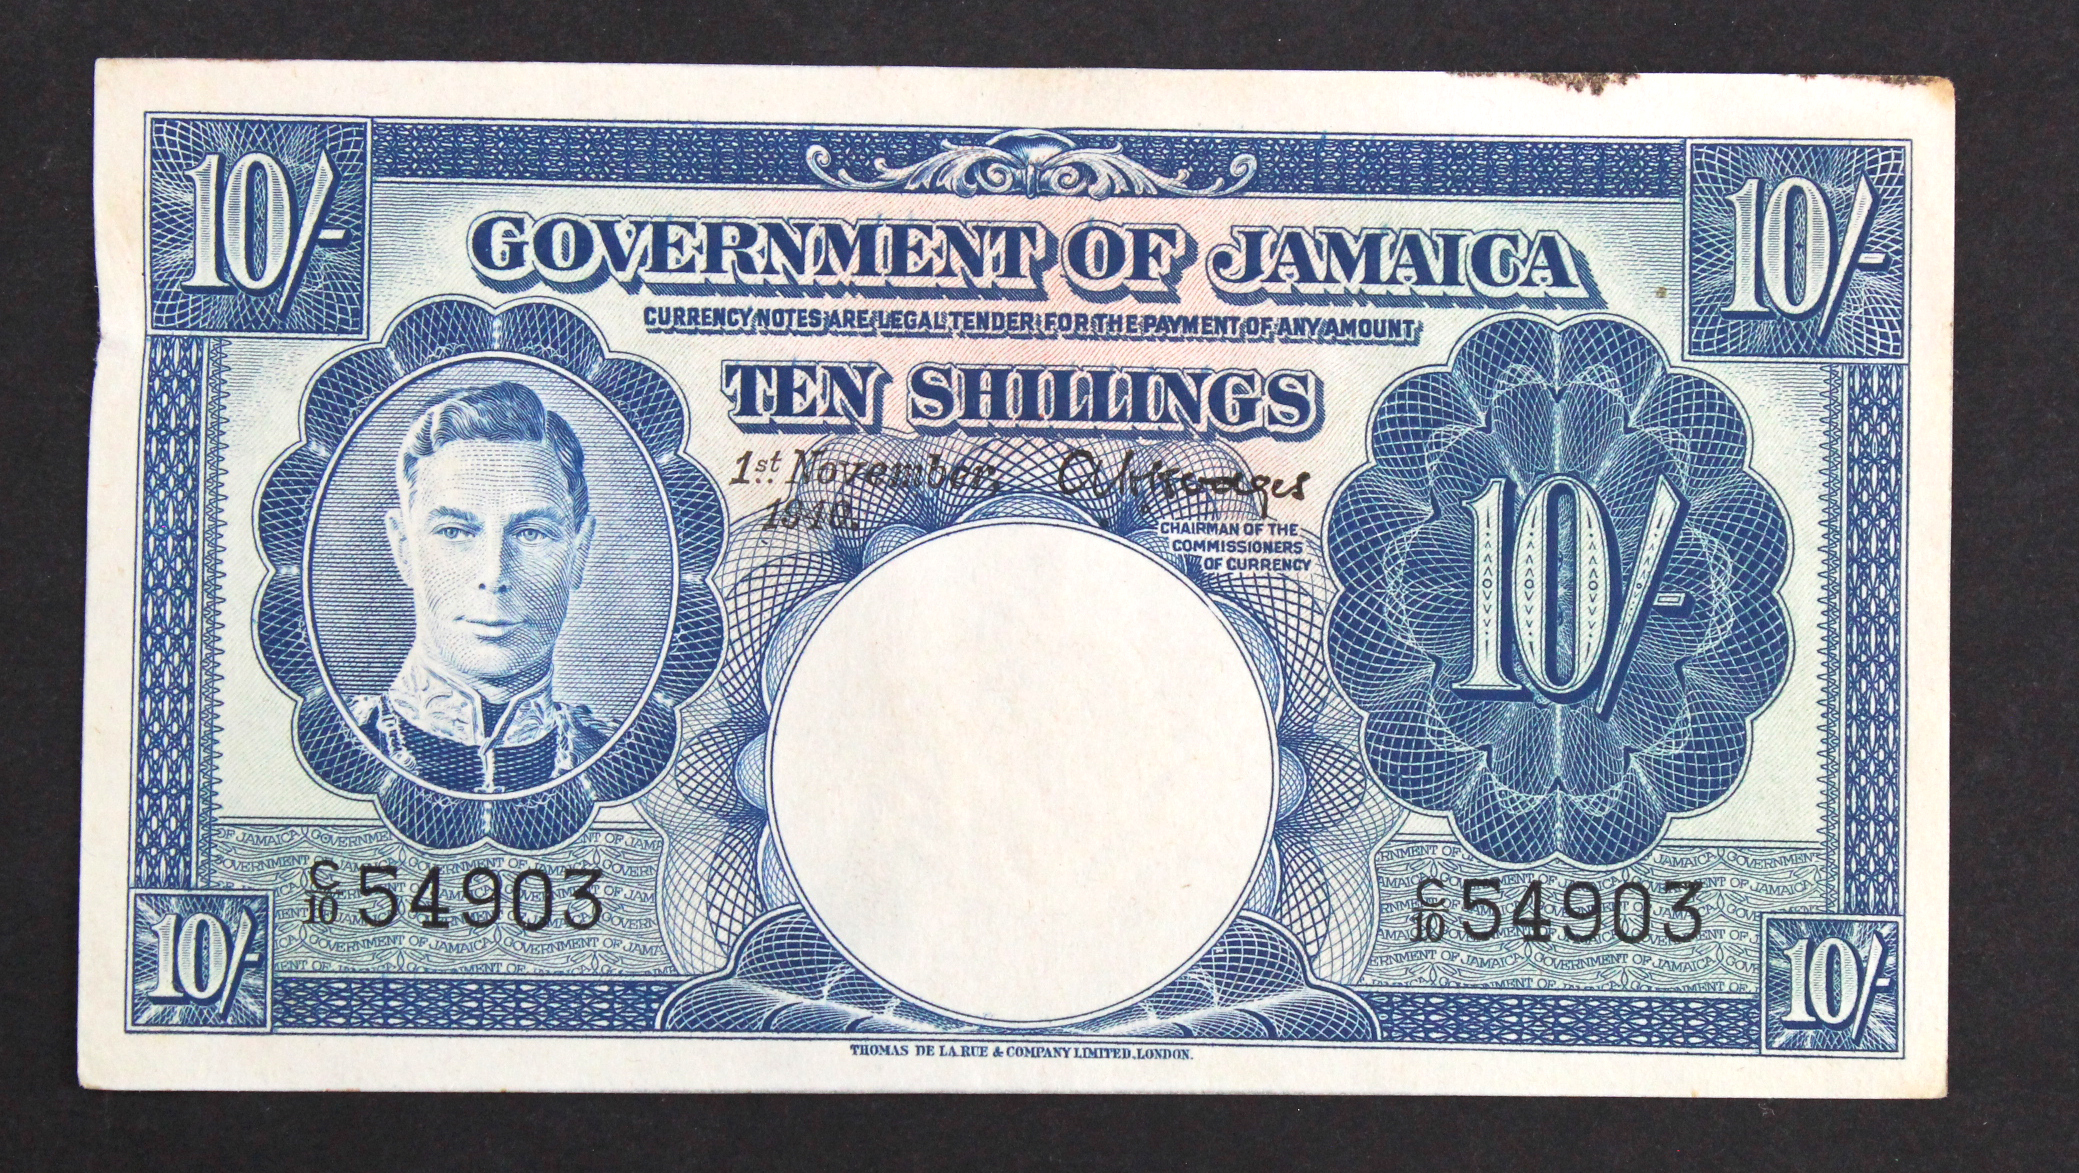 Jamaica 10 Shillings dated 1st November 1940, portrait King George VI at left, in 1941 the SS